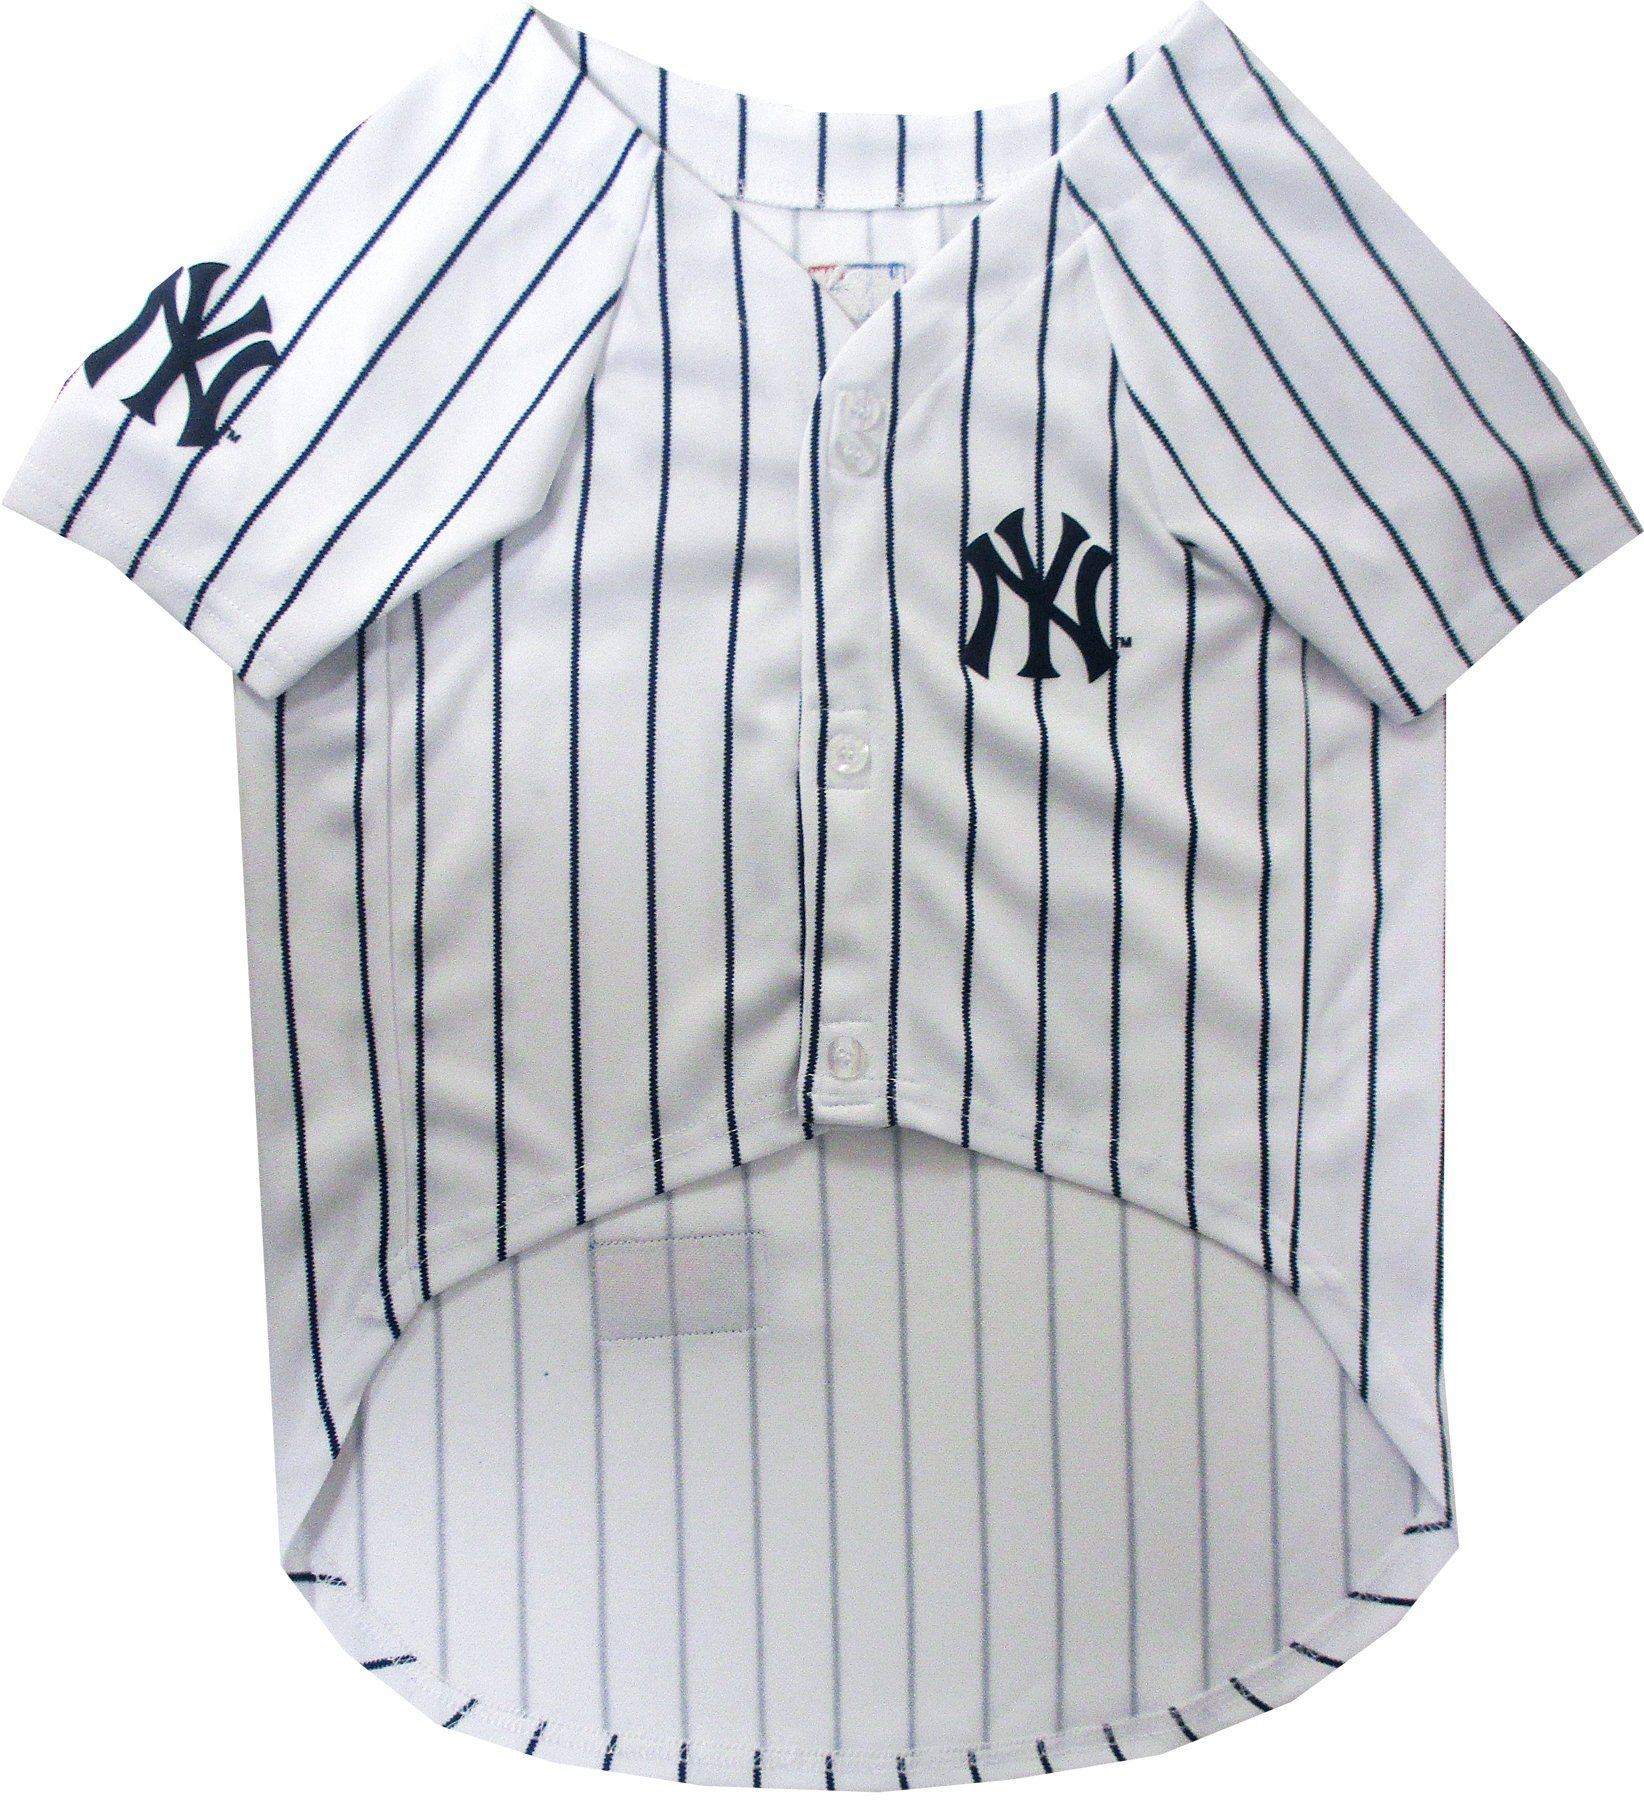 New York Yankees Puppy Dog Baseball Jersey - Jersey Champs - Custom Basketball, Baseball, Football & Hockey Jerseys